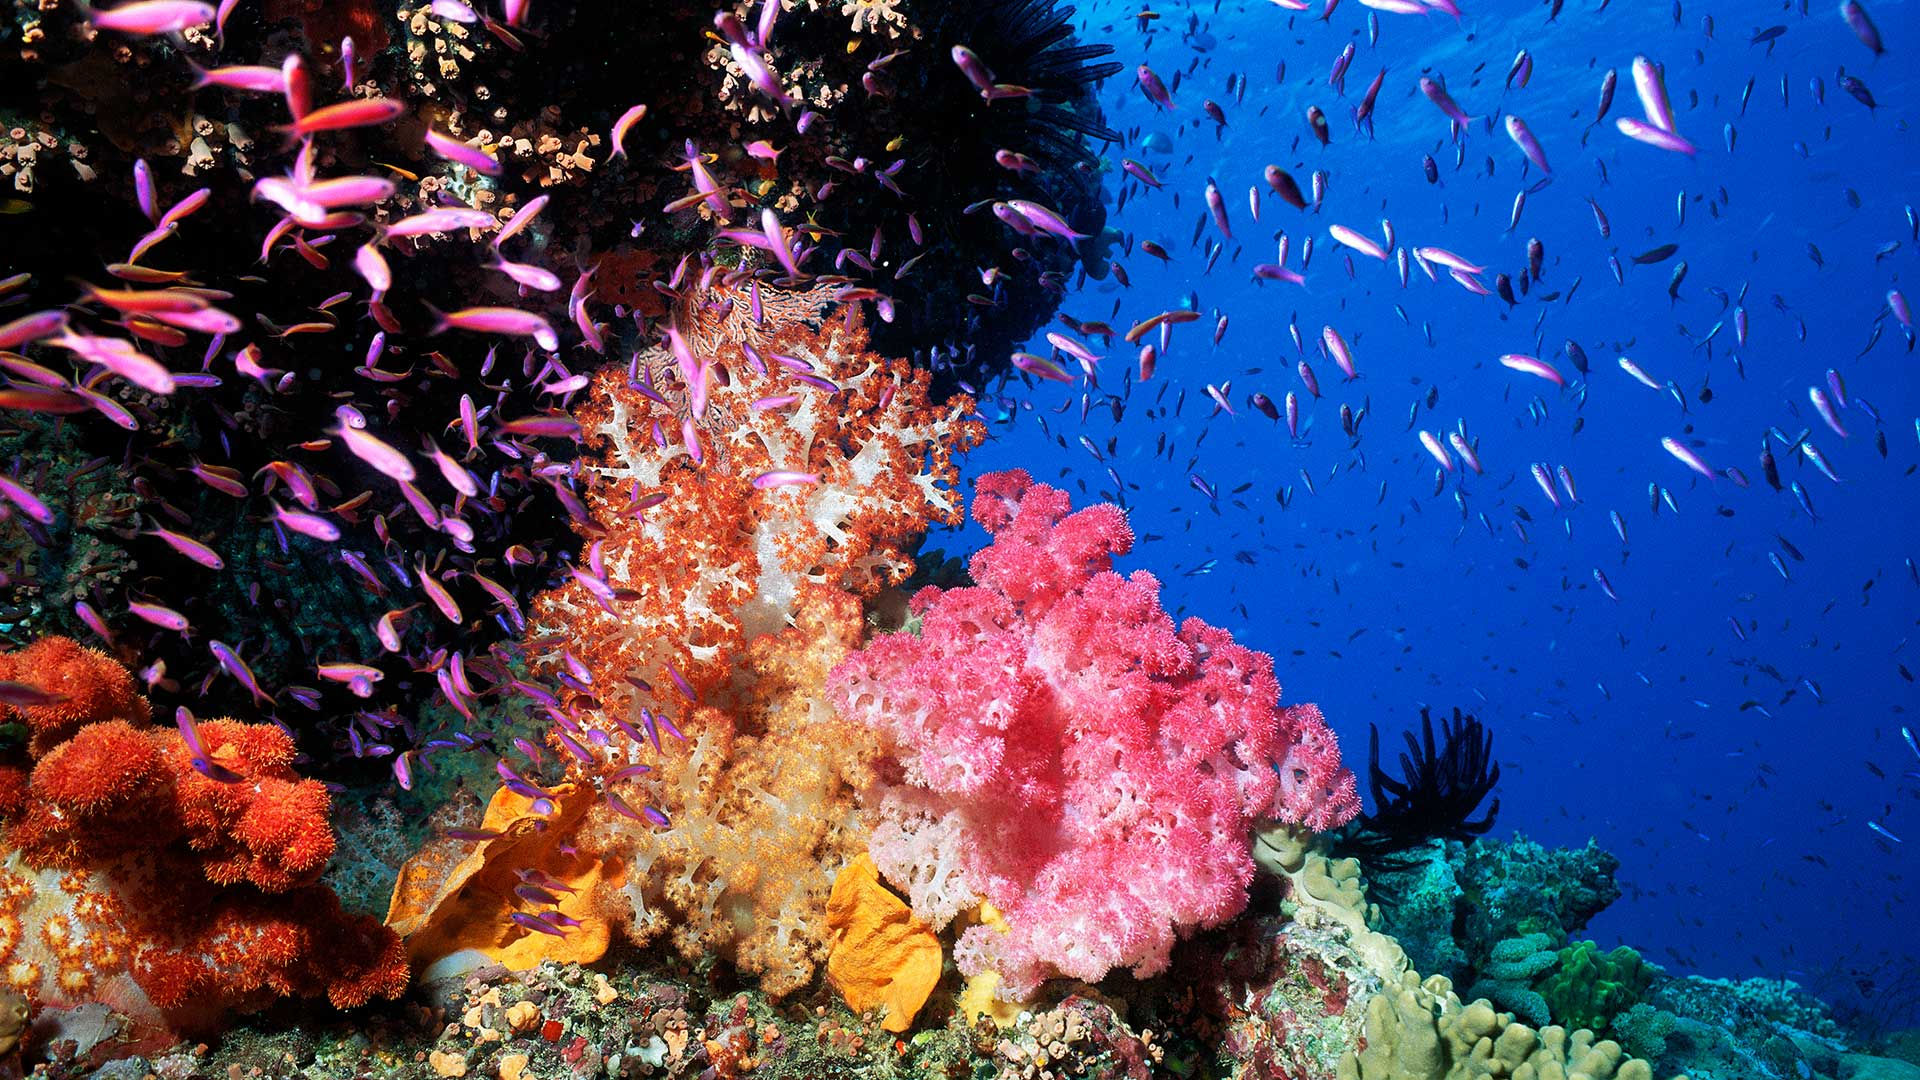 Pixie Pinnacle with Colorful Soft Coral And Anthias, Great Barrier Reef, Australia